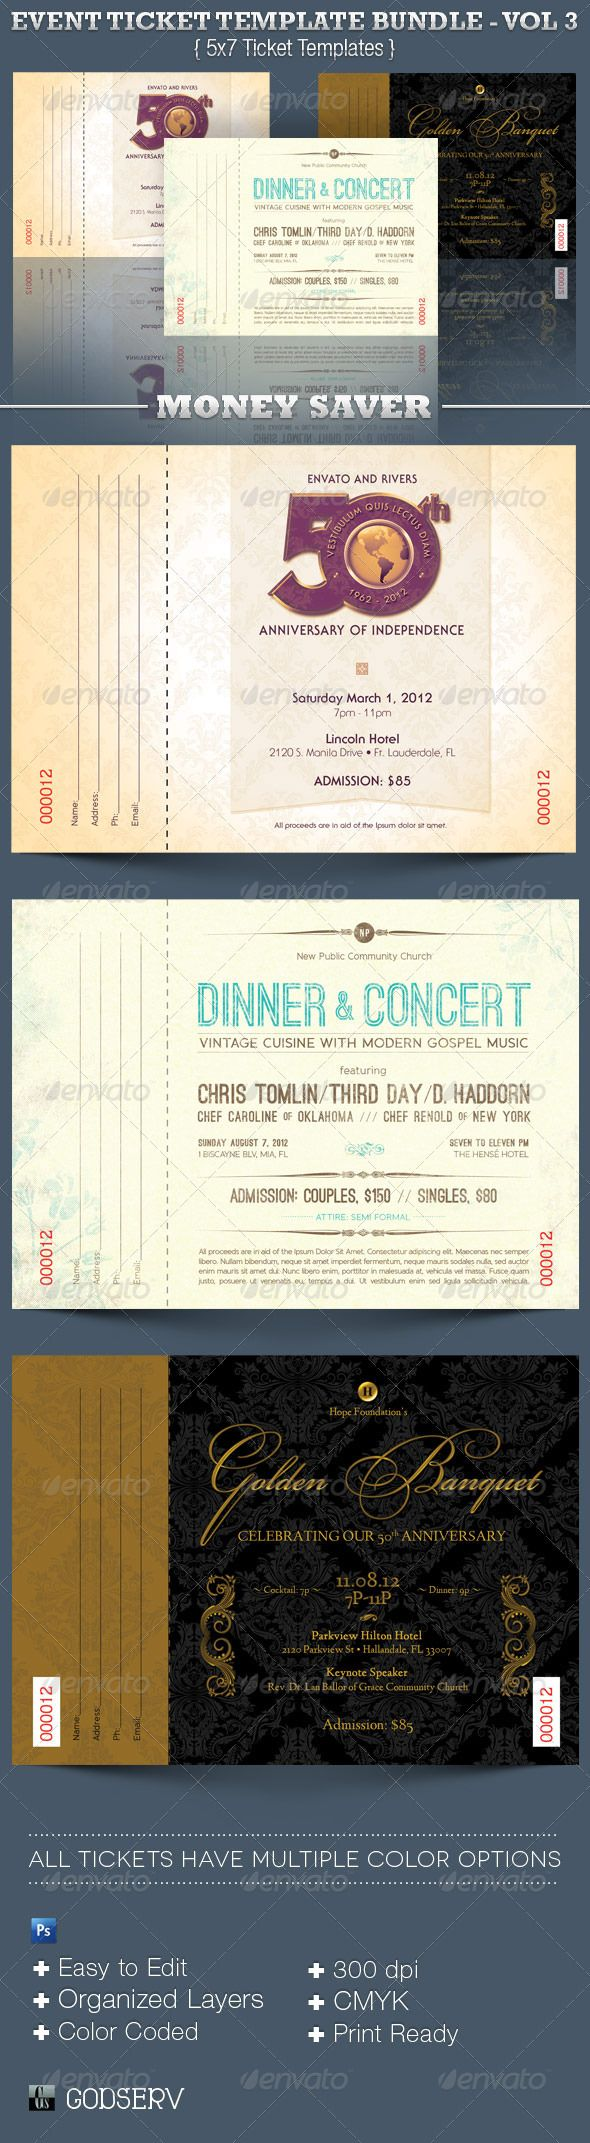 Best 25 concert ticket template ideas on pinterest concert best 25 concert ticket template ideas on pinterest concert tickets near me ticket and ticket design stopboris Images